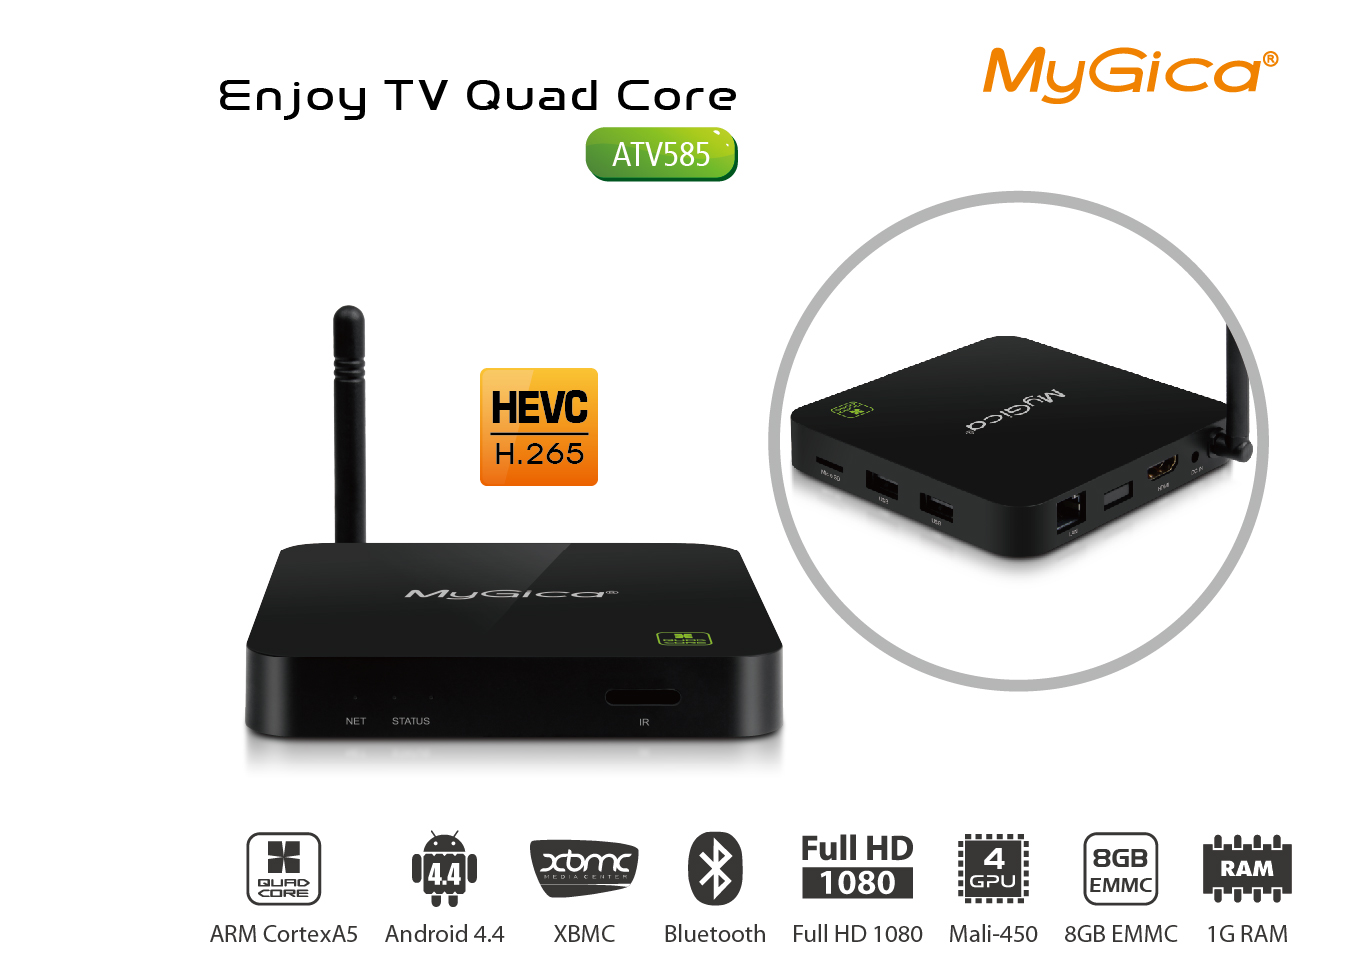 MyGica ATV585 Quad Core Android TV 1080P Box